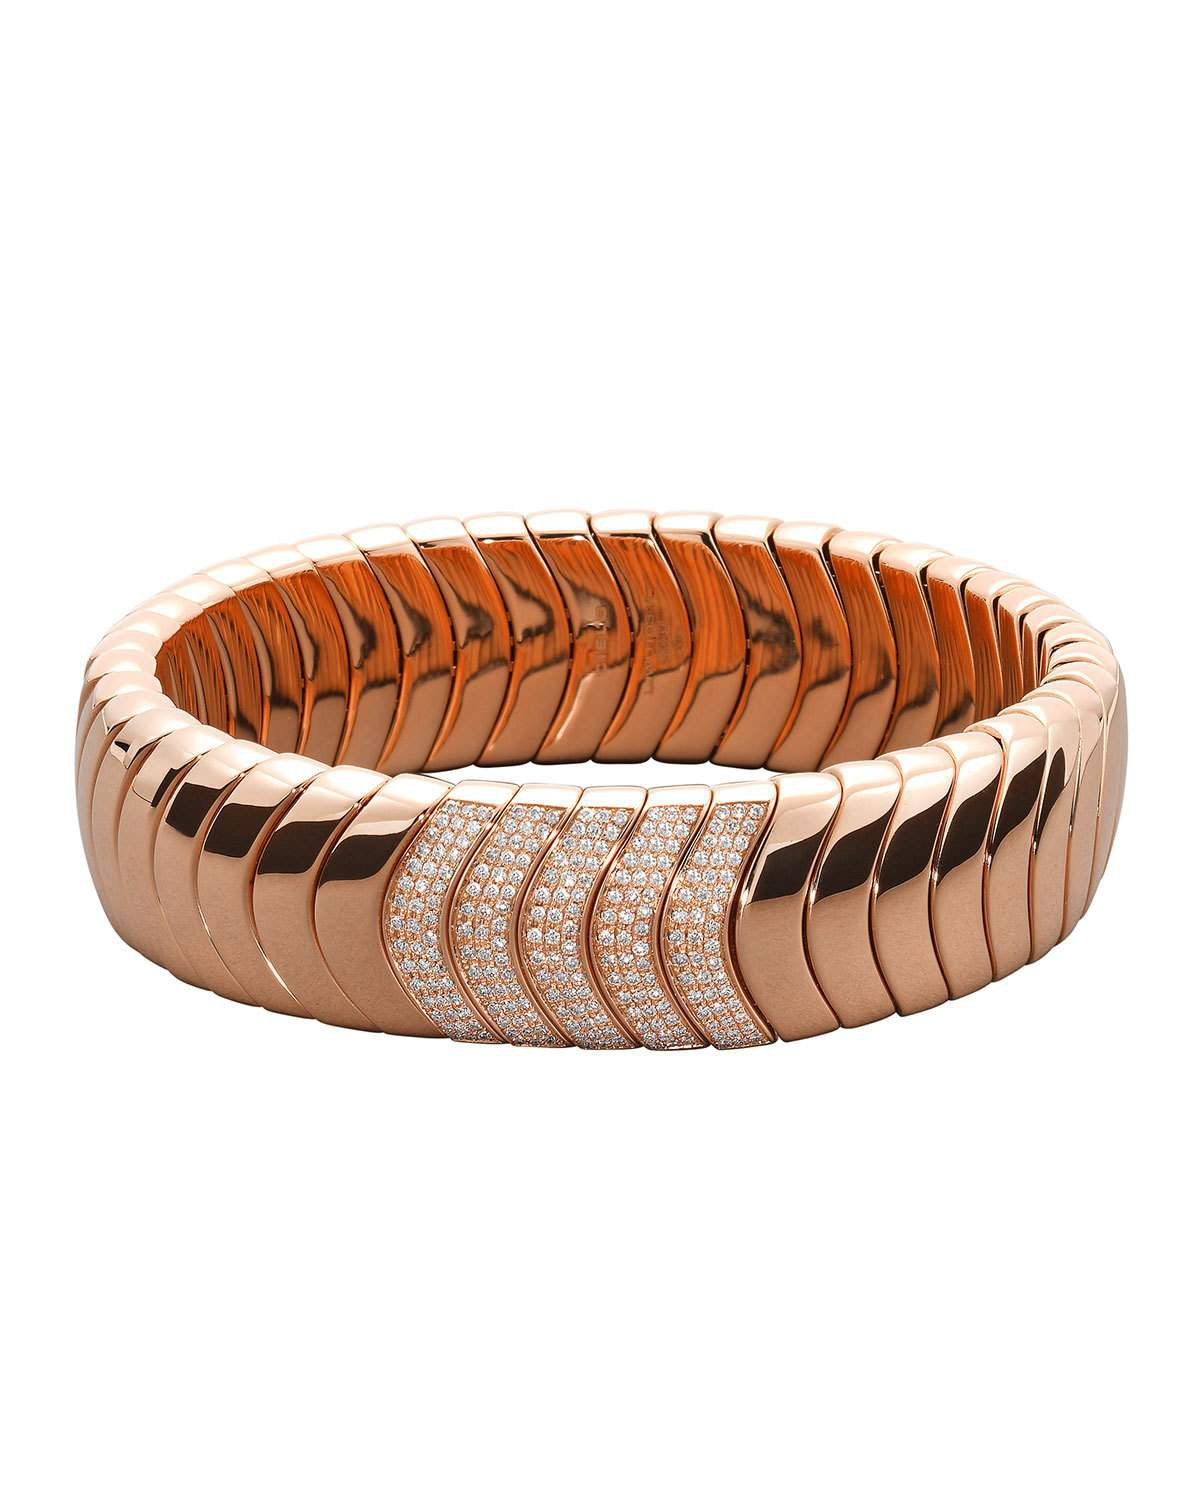 Mattia Cielo 18k Rose Gold Diamond Stretch Bracelet